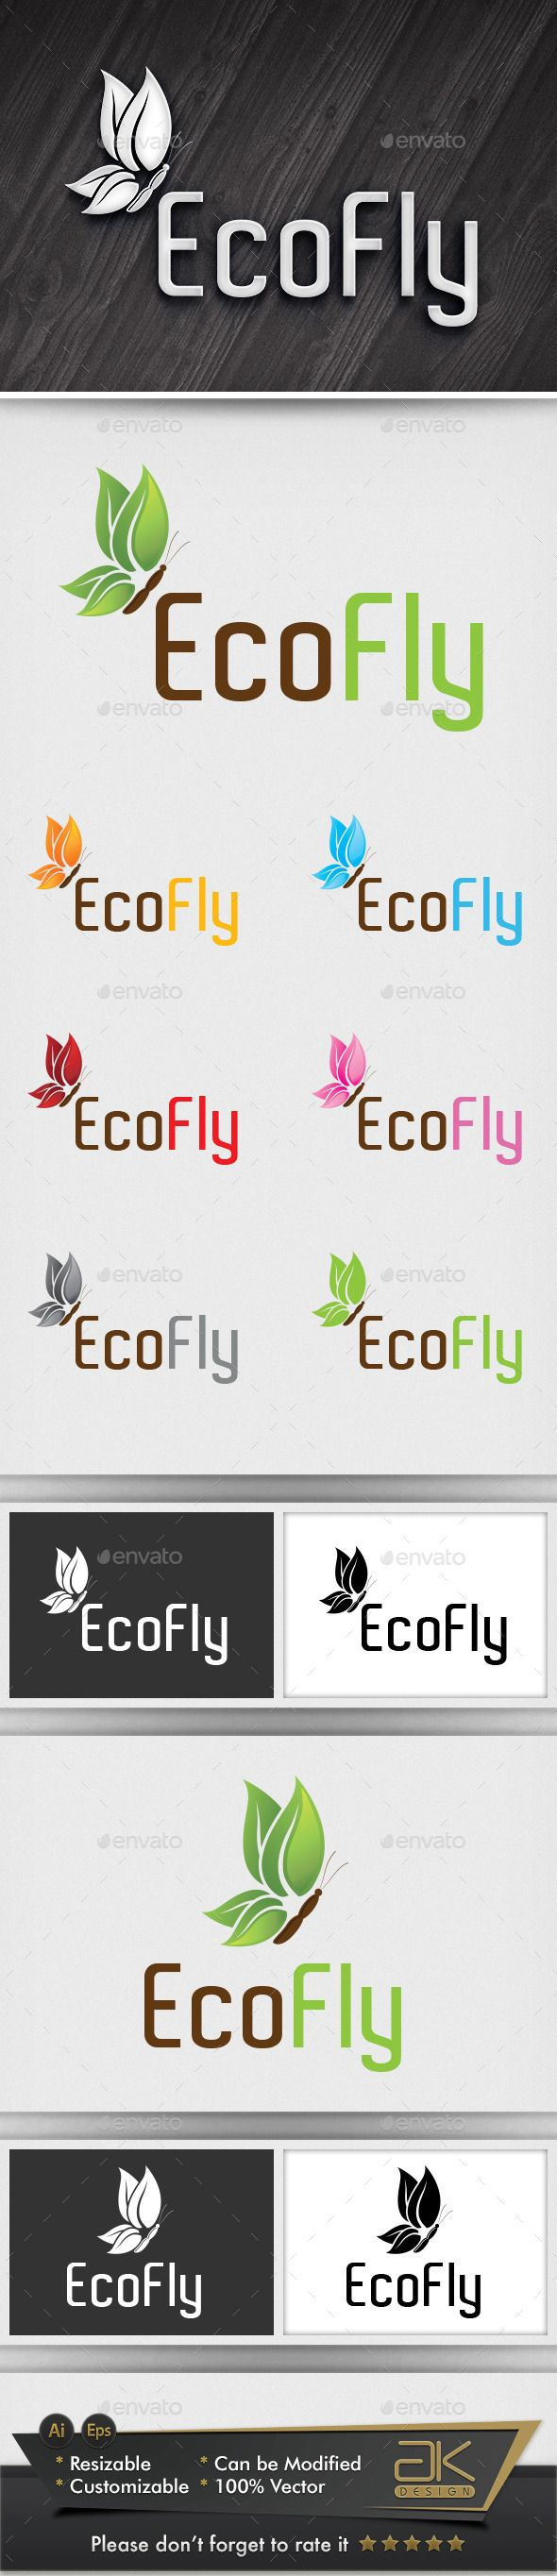 Eco Fly - Logo Design Template Vector #logotype Download it here: http://graphicriver.net/item/eco-fly/6045271?s_rank=877?ref=nexion